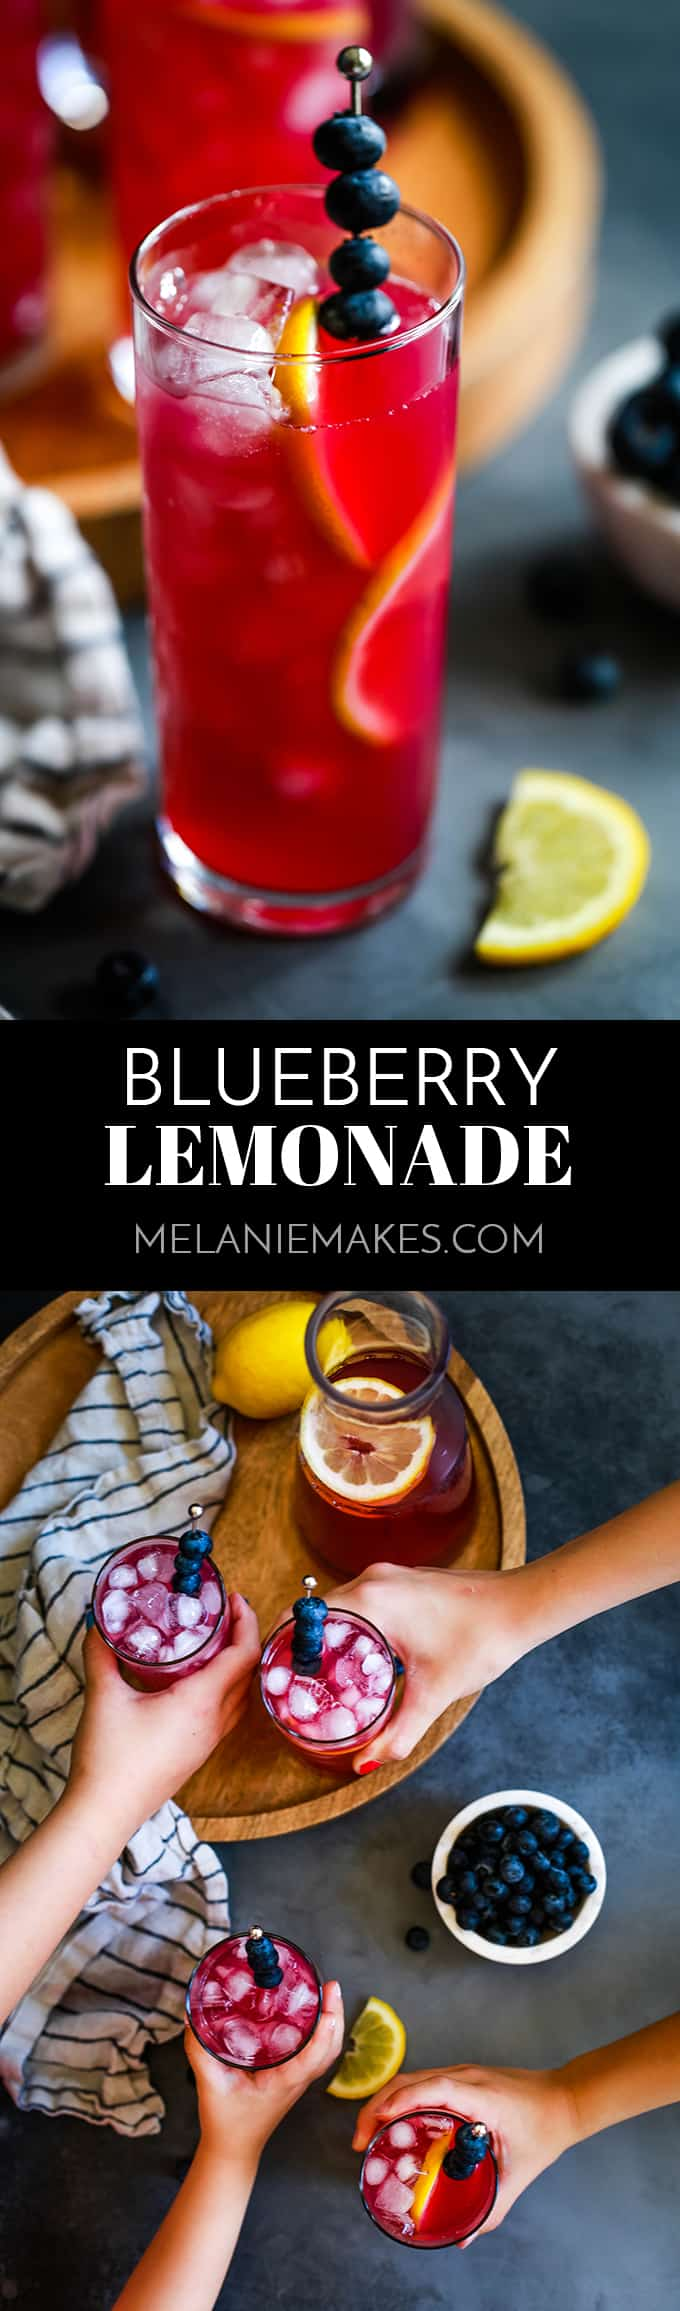 My Blueberry Lemonade requires just four ingredients and 15 minutes to prepare, and that's if you count water as an ingredient.  The signature drink of summer gets an upgrade thanks to my delicious shortcut! #blueberry #lemonade #drinks #summerrecipes #easyrecipe #preserves